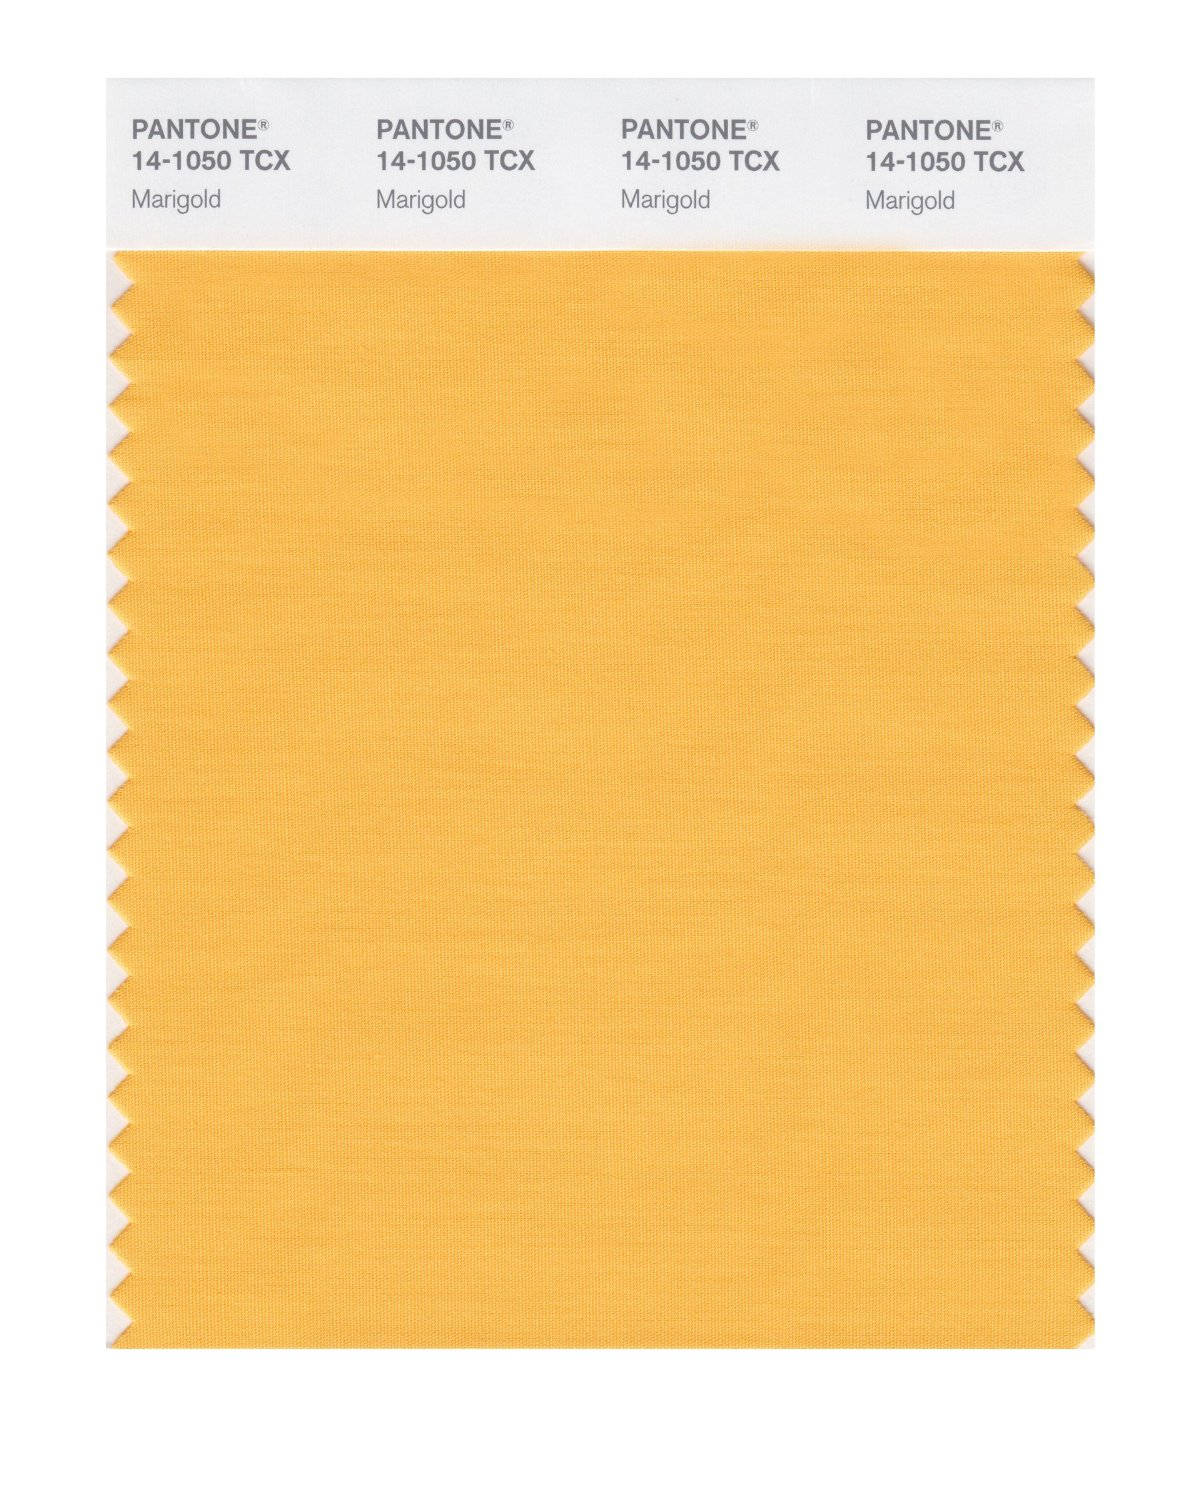 Pantone Smart Swatch 14-1050 Marigold